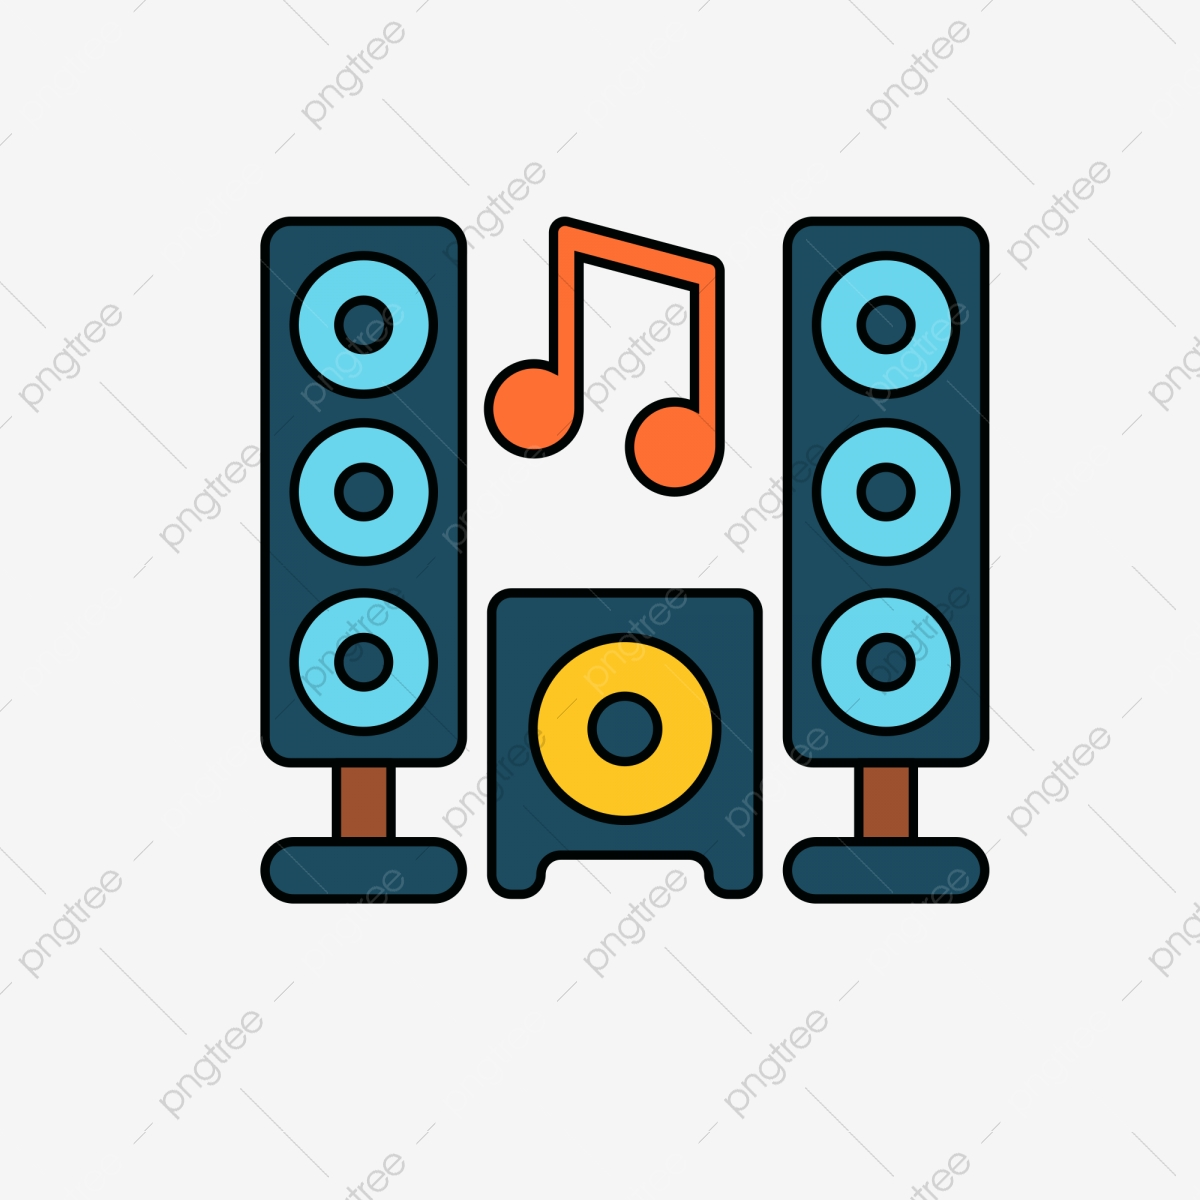 Home Theatre Music Icon Speaker Cartoon Illustration Png Transparent Clipart Image And Psd File For Free Download